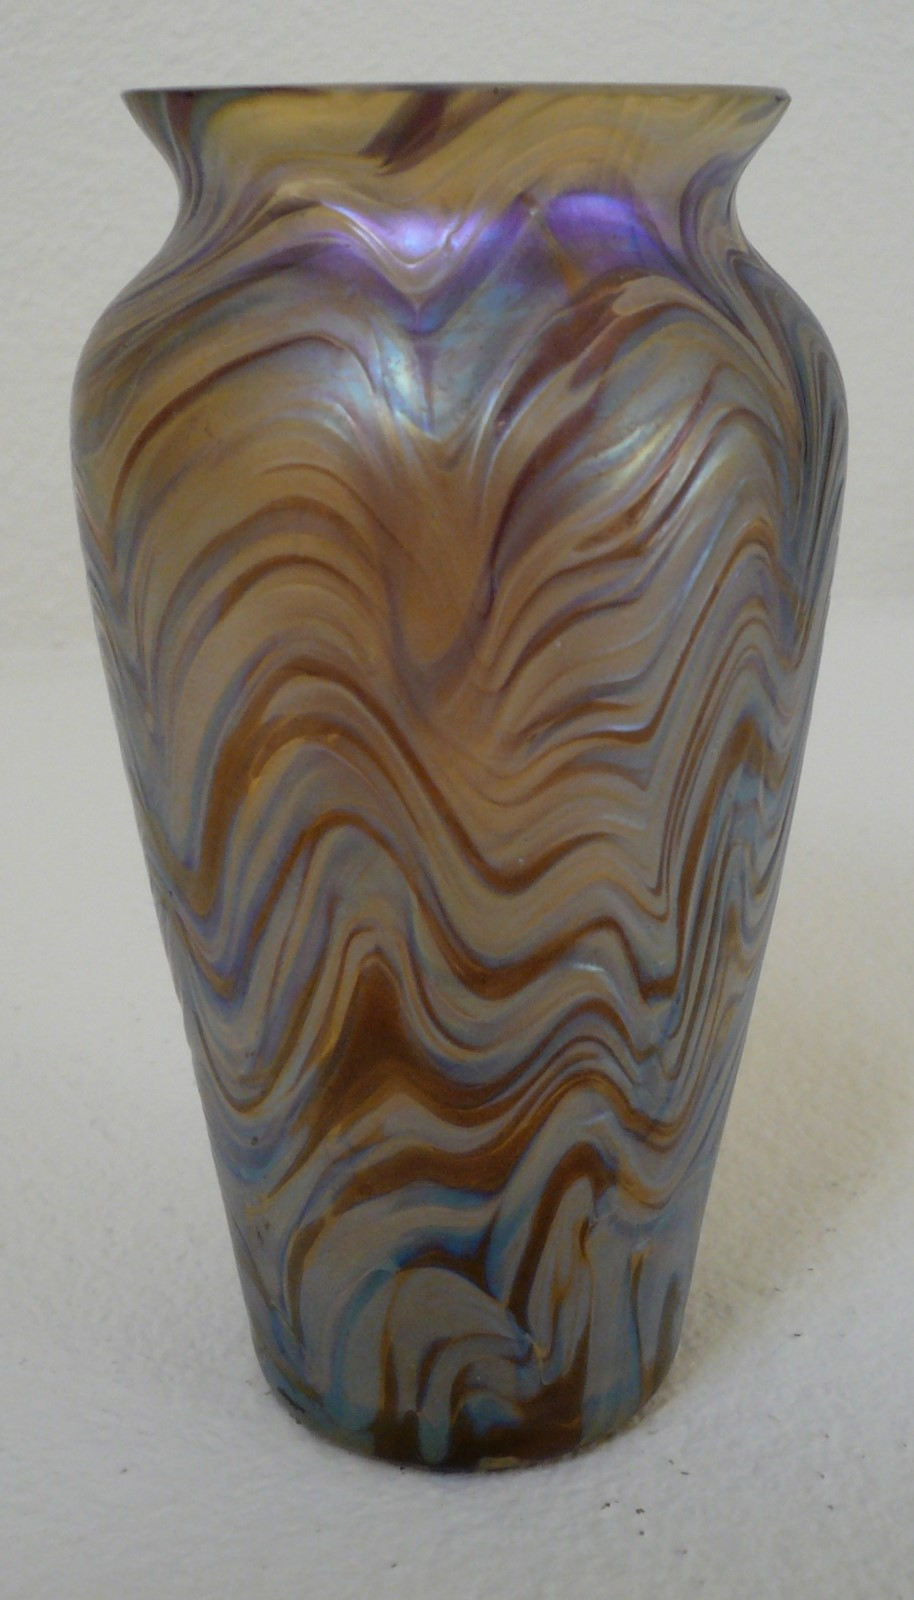 Thegildedcurio kralik glass vase corrugated and banded with thegildedcurio kralik glass vase corrugated and banded with mild iridescence reviewsmspy